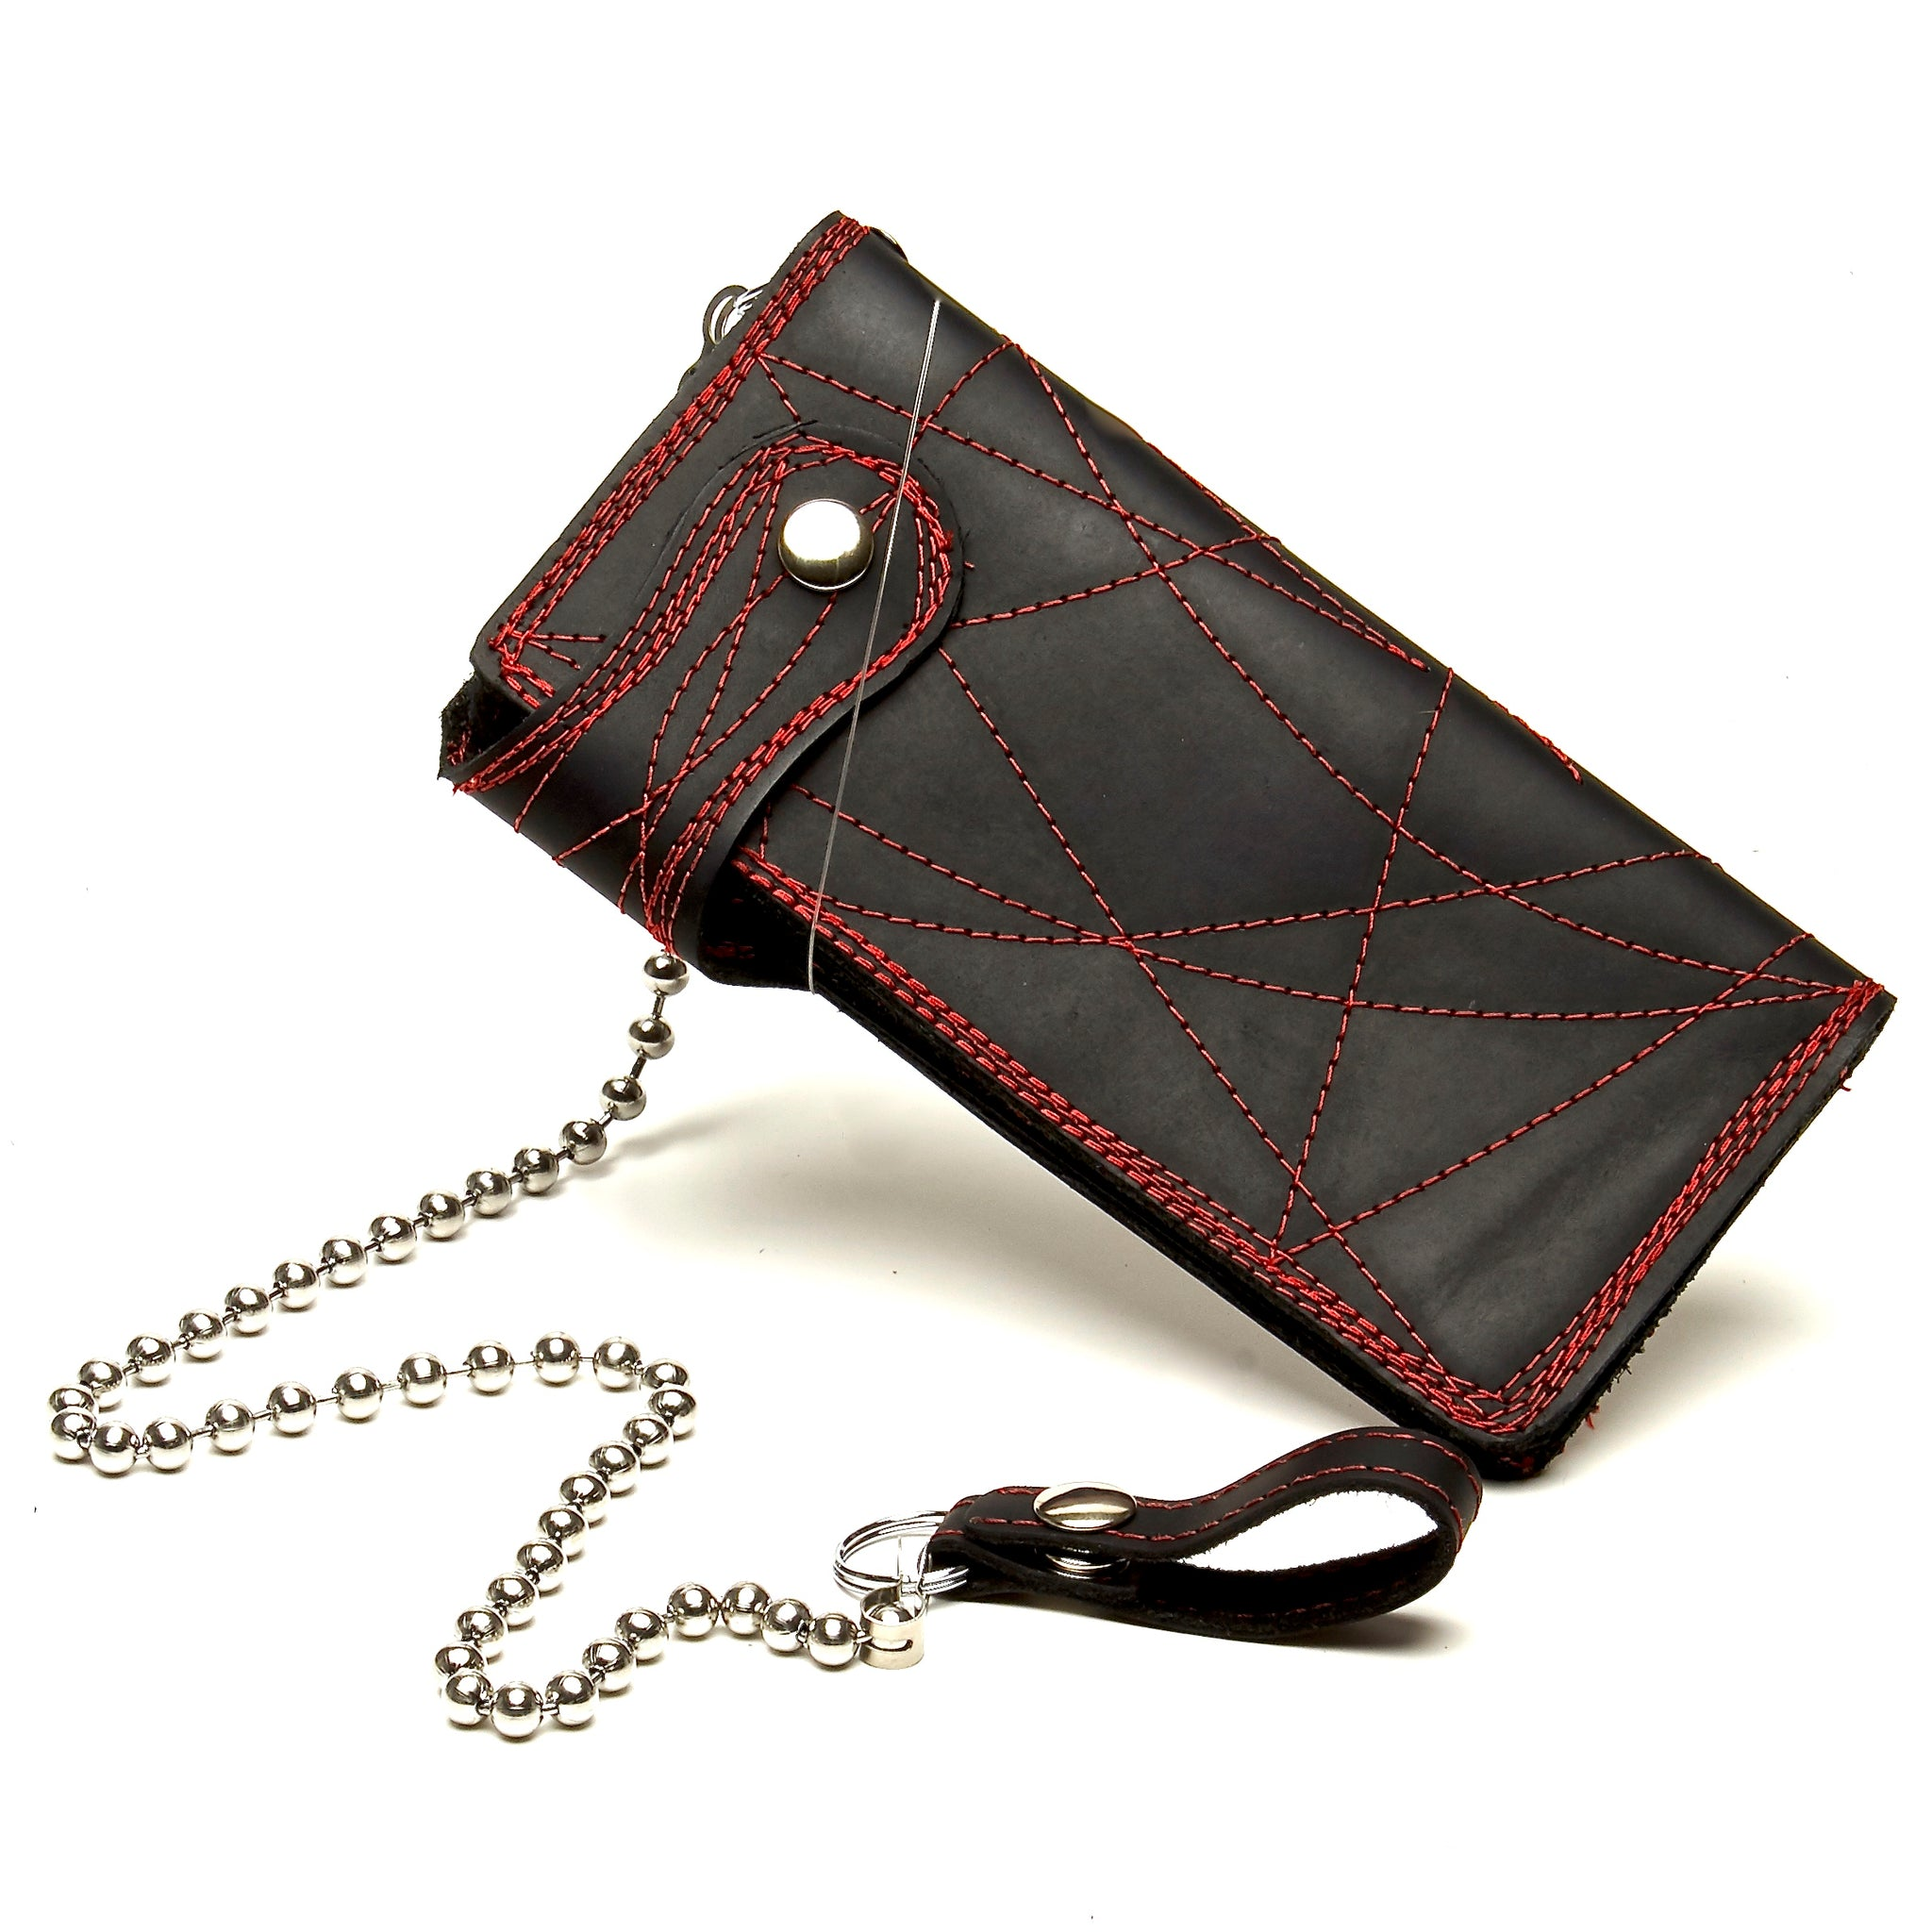 BLACK STONE OILED LEATHER COWHIDE BIKER WALLET WITH RED CONTRASTING STITCHING THROUGHOUT AND MATCHING CHAIN. by nyet jewelry.